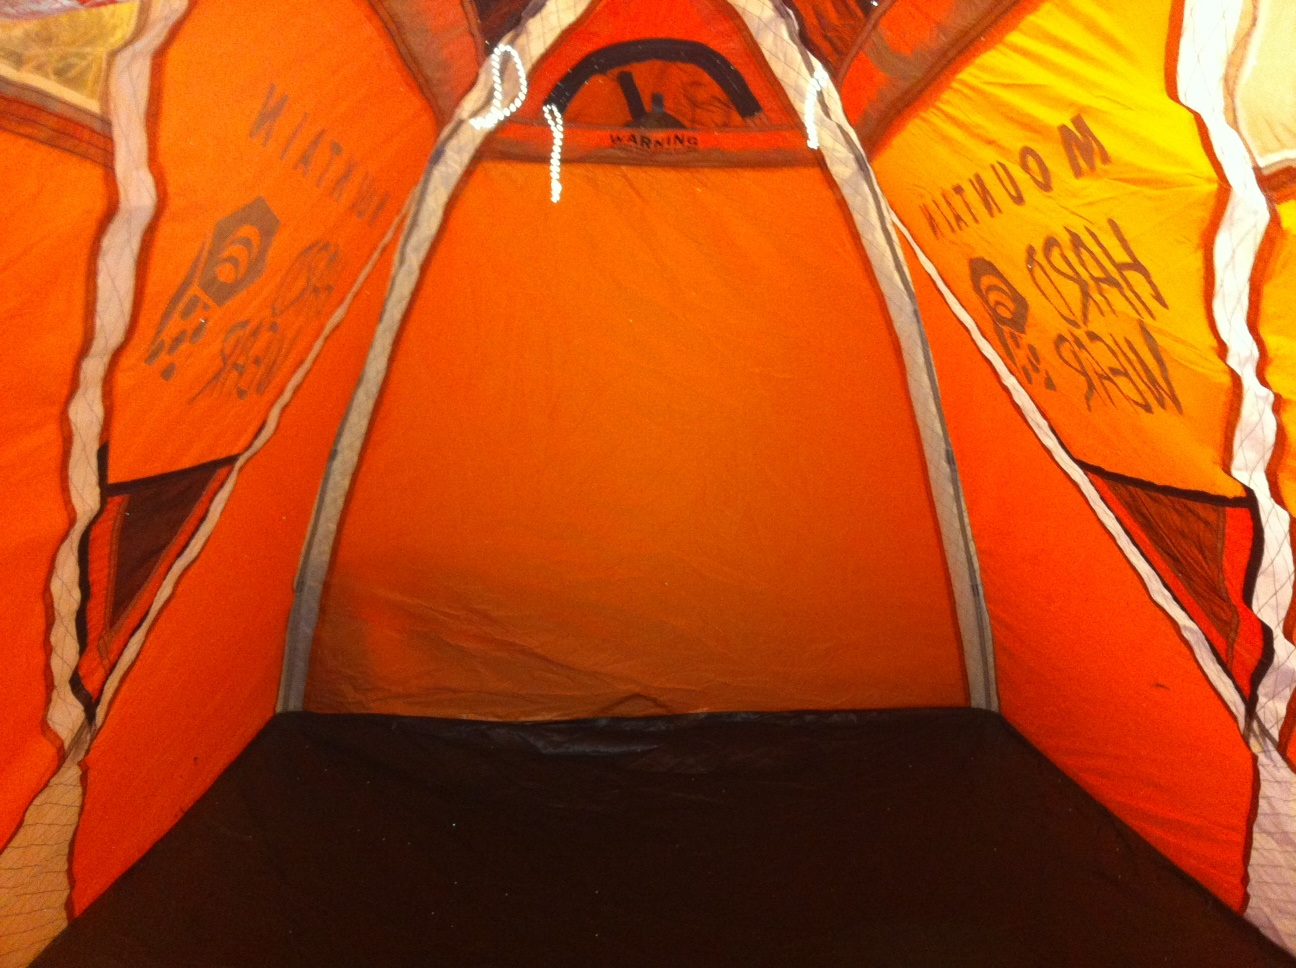 4749.thumb.jpg.3da88a08e2a203c8704d4f95abe1dc7e.jpg & FS: Mountain Hardwear EV 2 tent SOLD - The Yard Sale ...